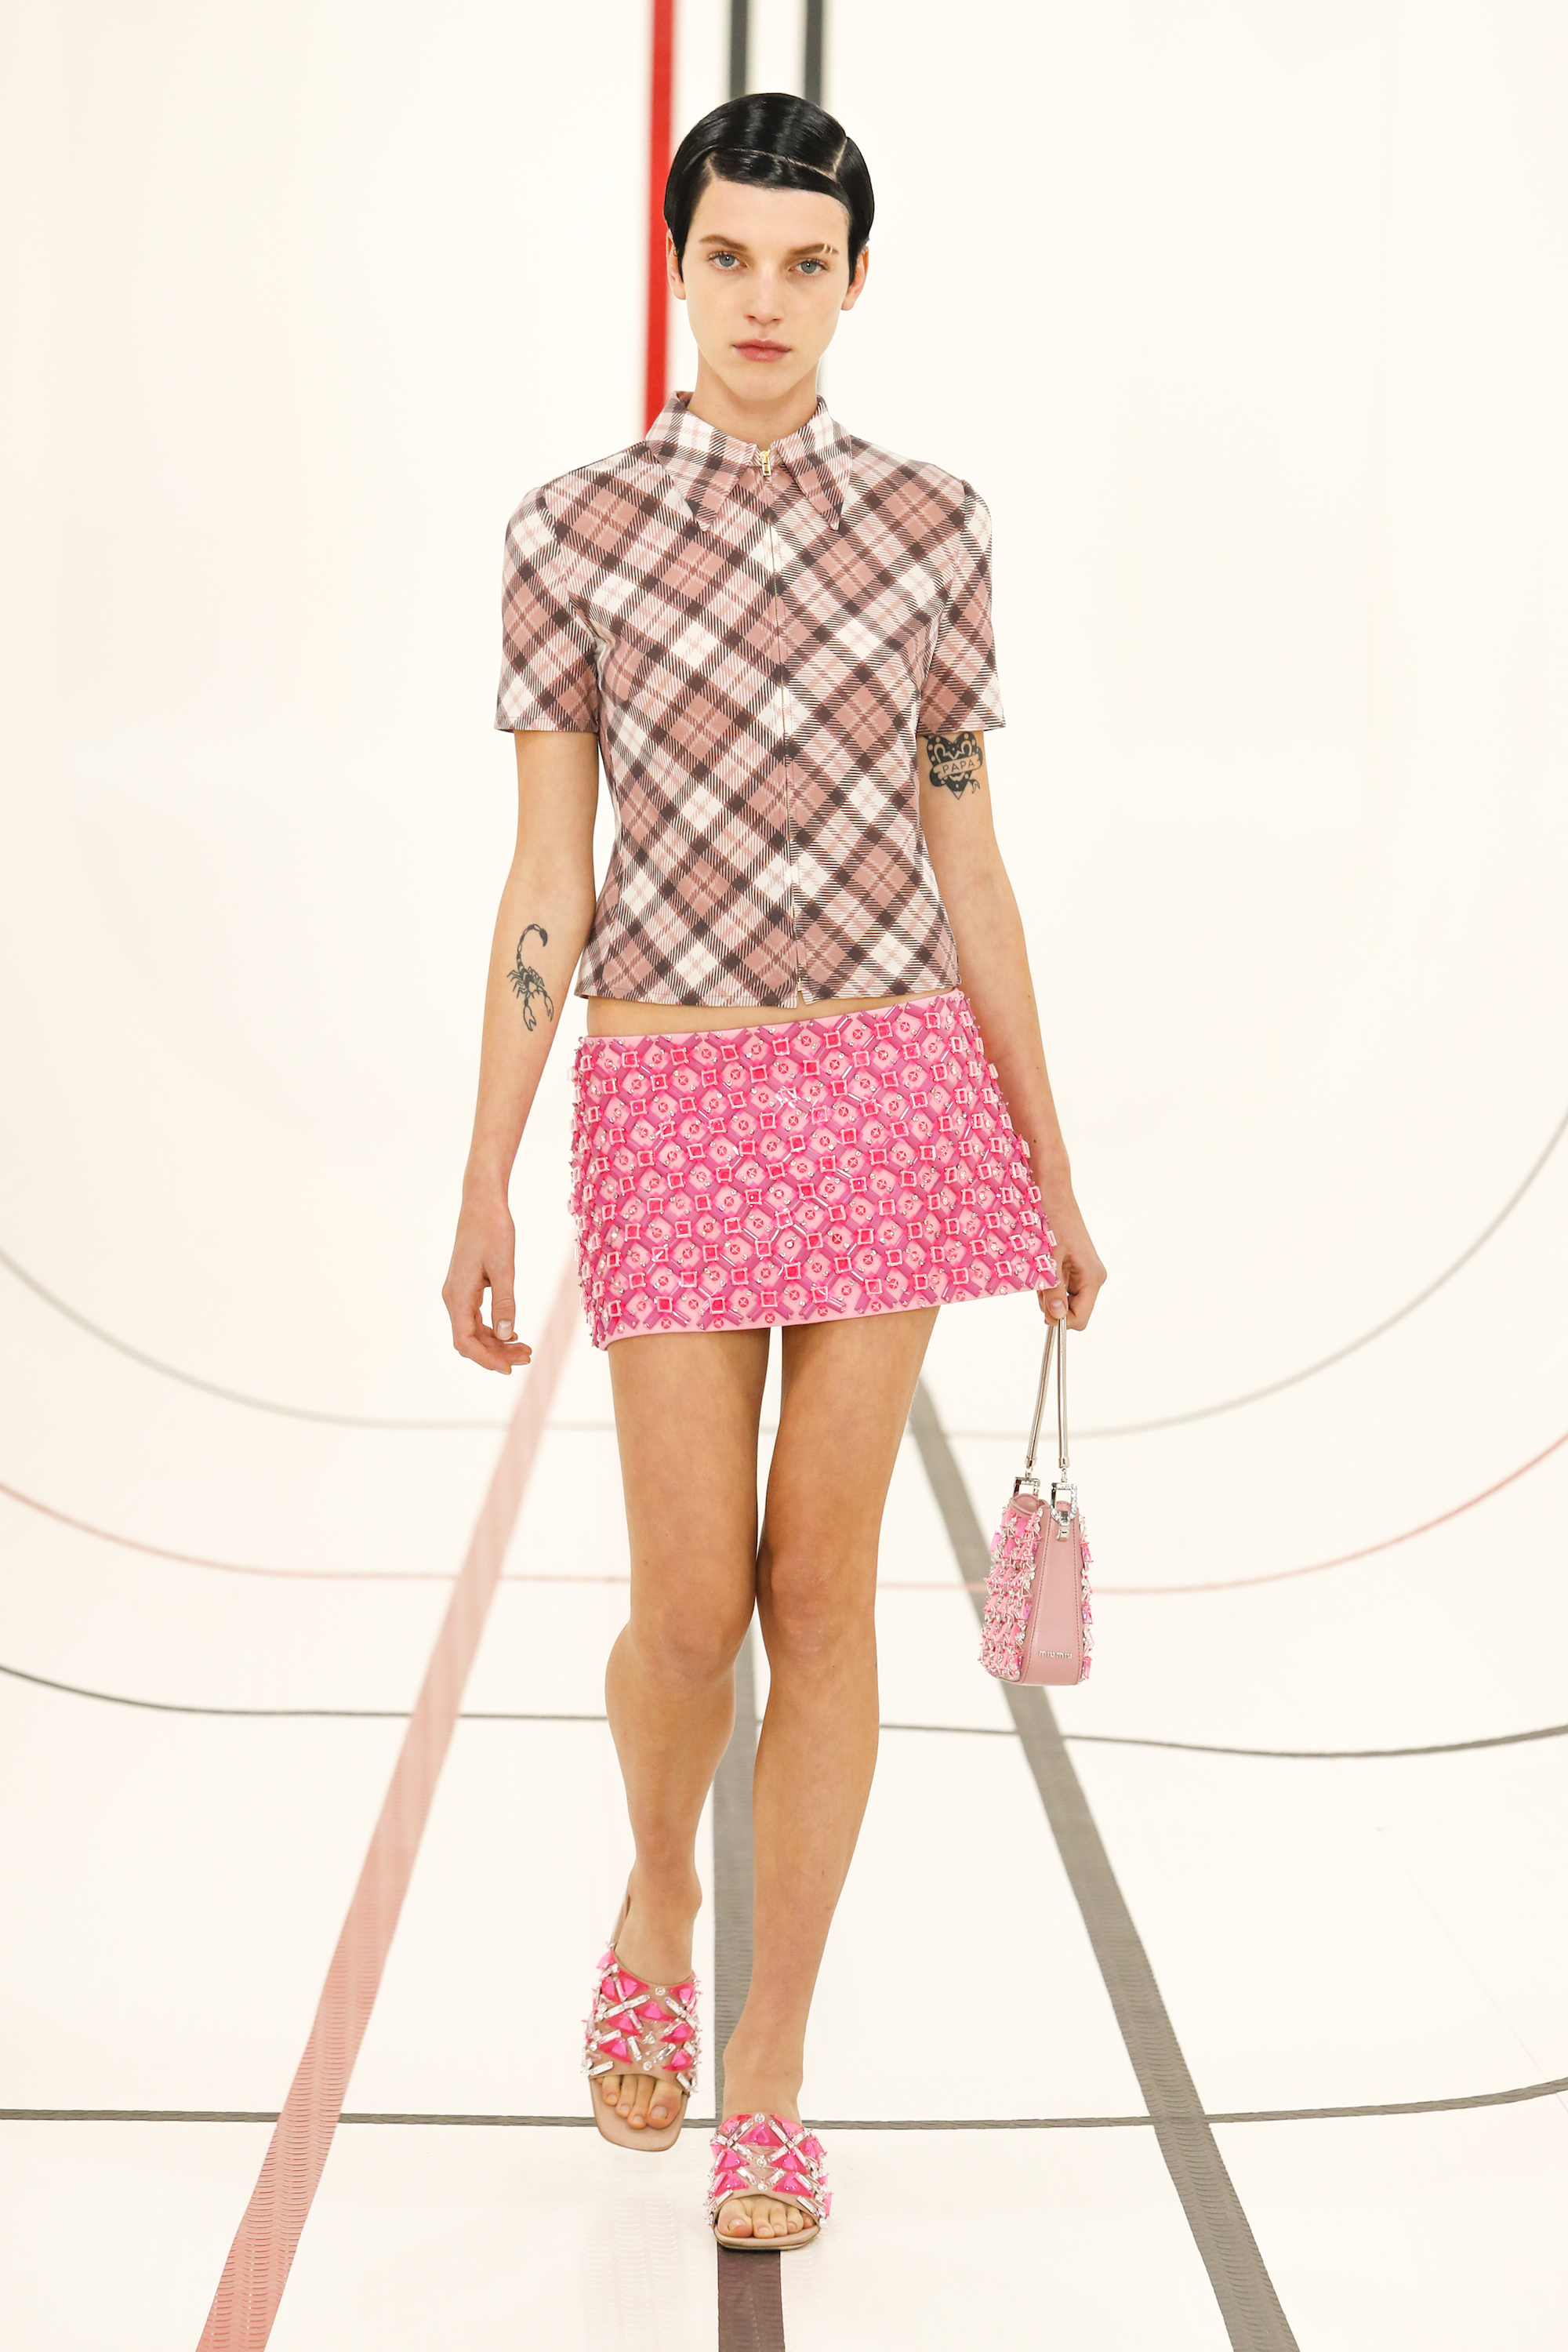 Miu Miu SS21 pink skirt and checked top